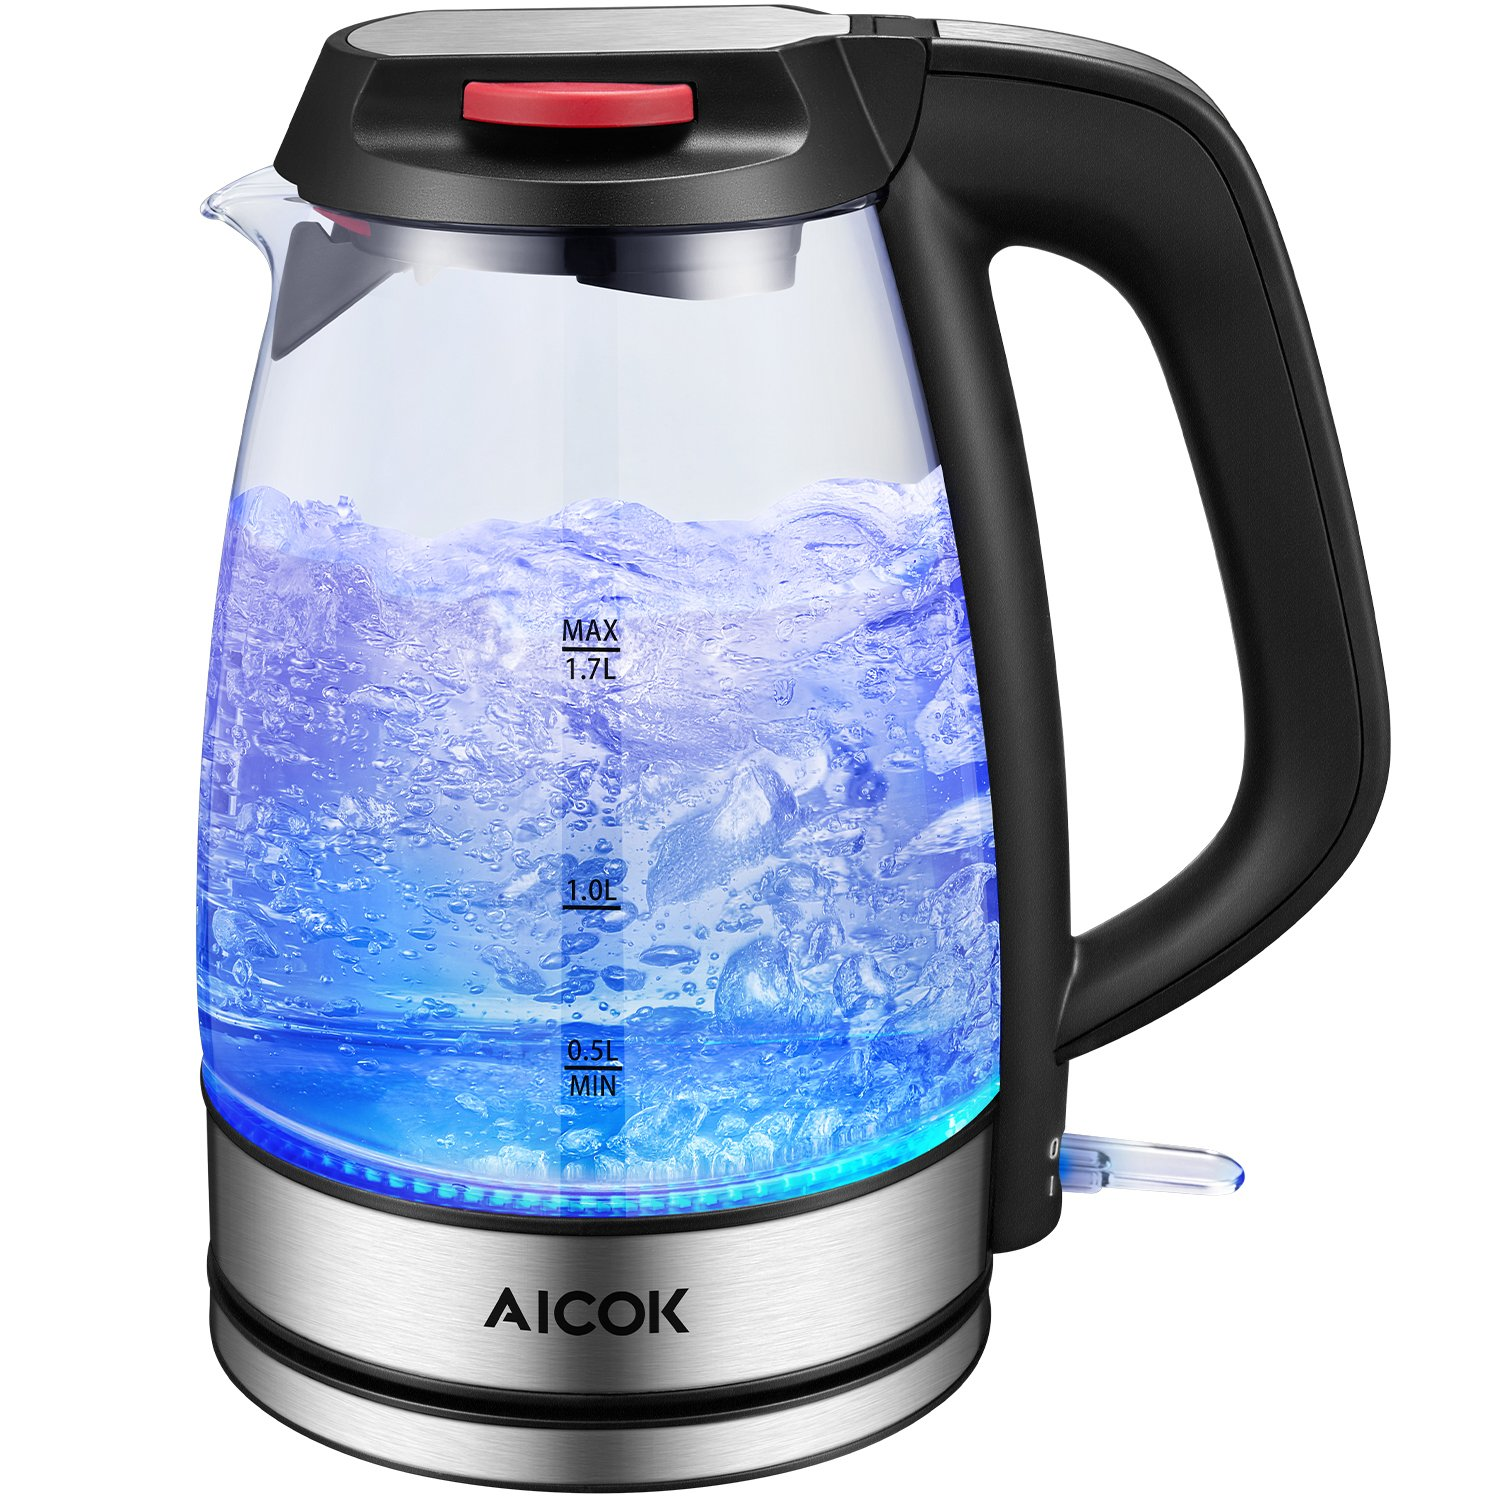 Aicok Electric Kettle SpeedBoil 1500W BPA-Free Glass Tea Kettle, Cordless Kettle with Auto Shut-Off and Boil-Dry Protection(FDA Certified/UL Approved) 8026